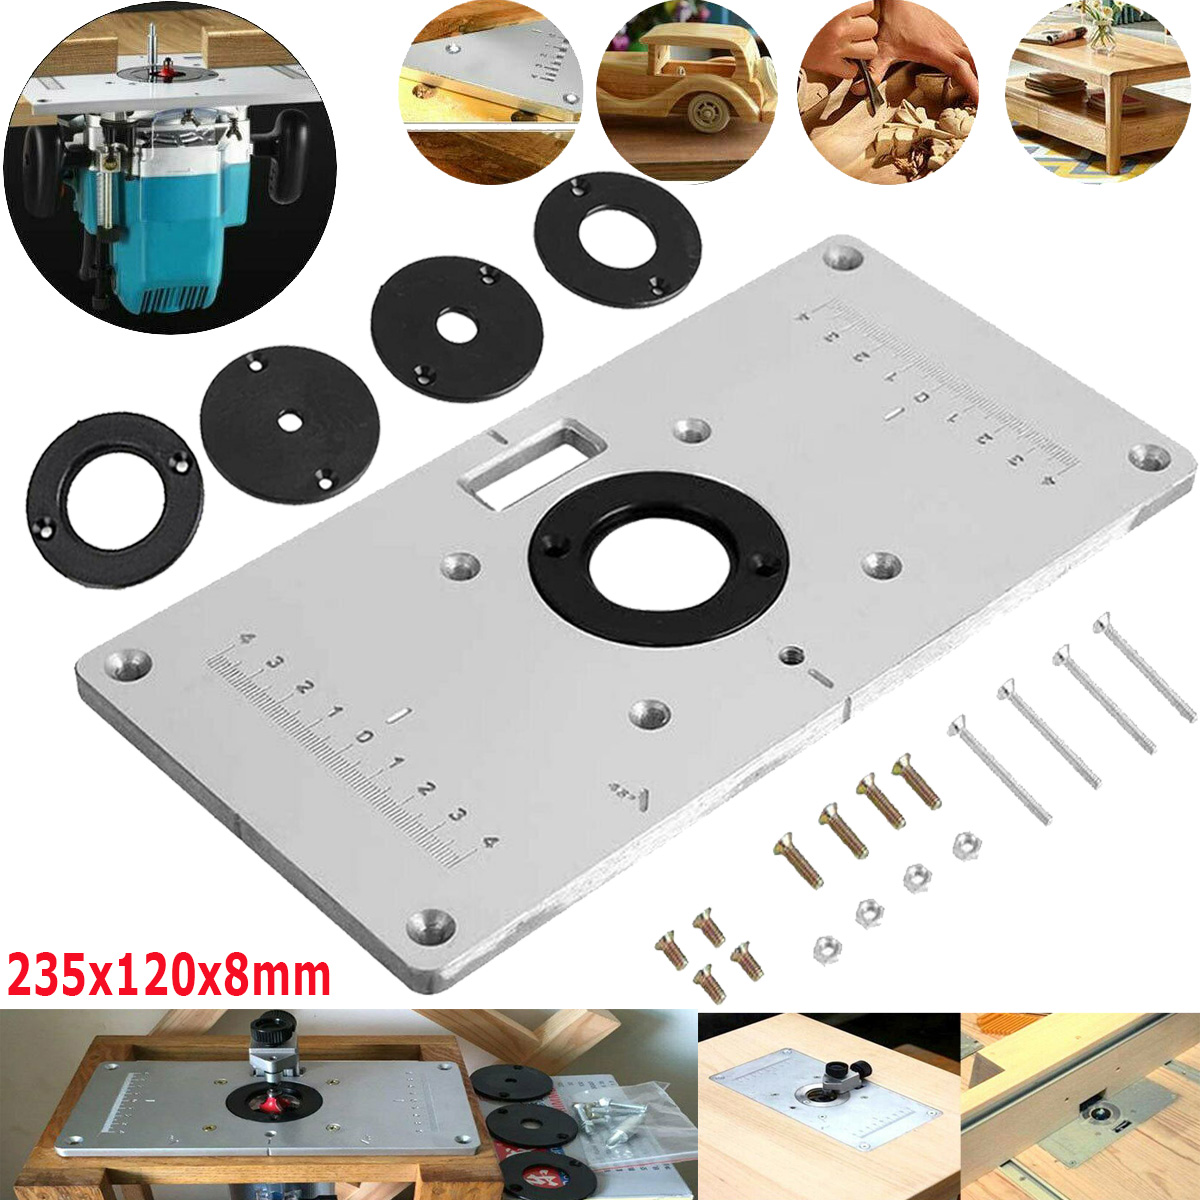 Details About Aluminum Router Table Insert Plate 4 Rings Screws For Woodworking Benches 700c